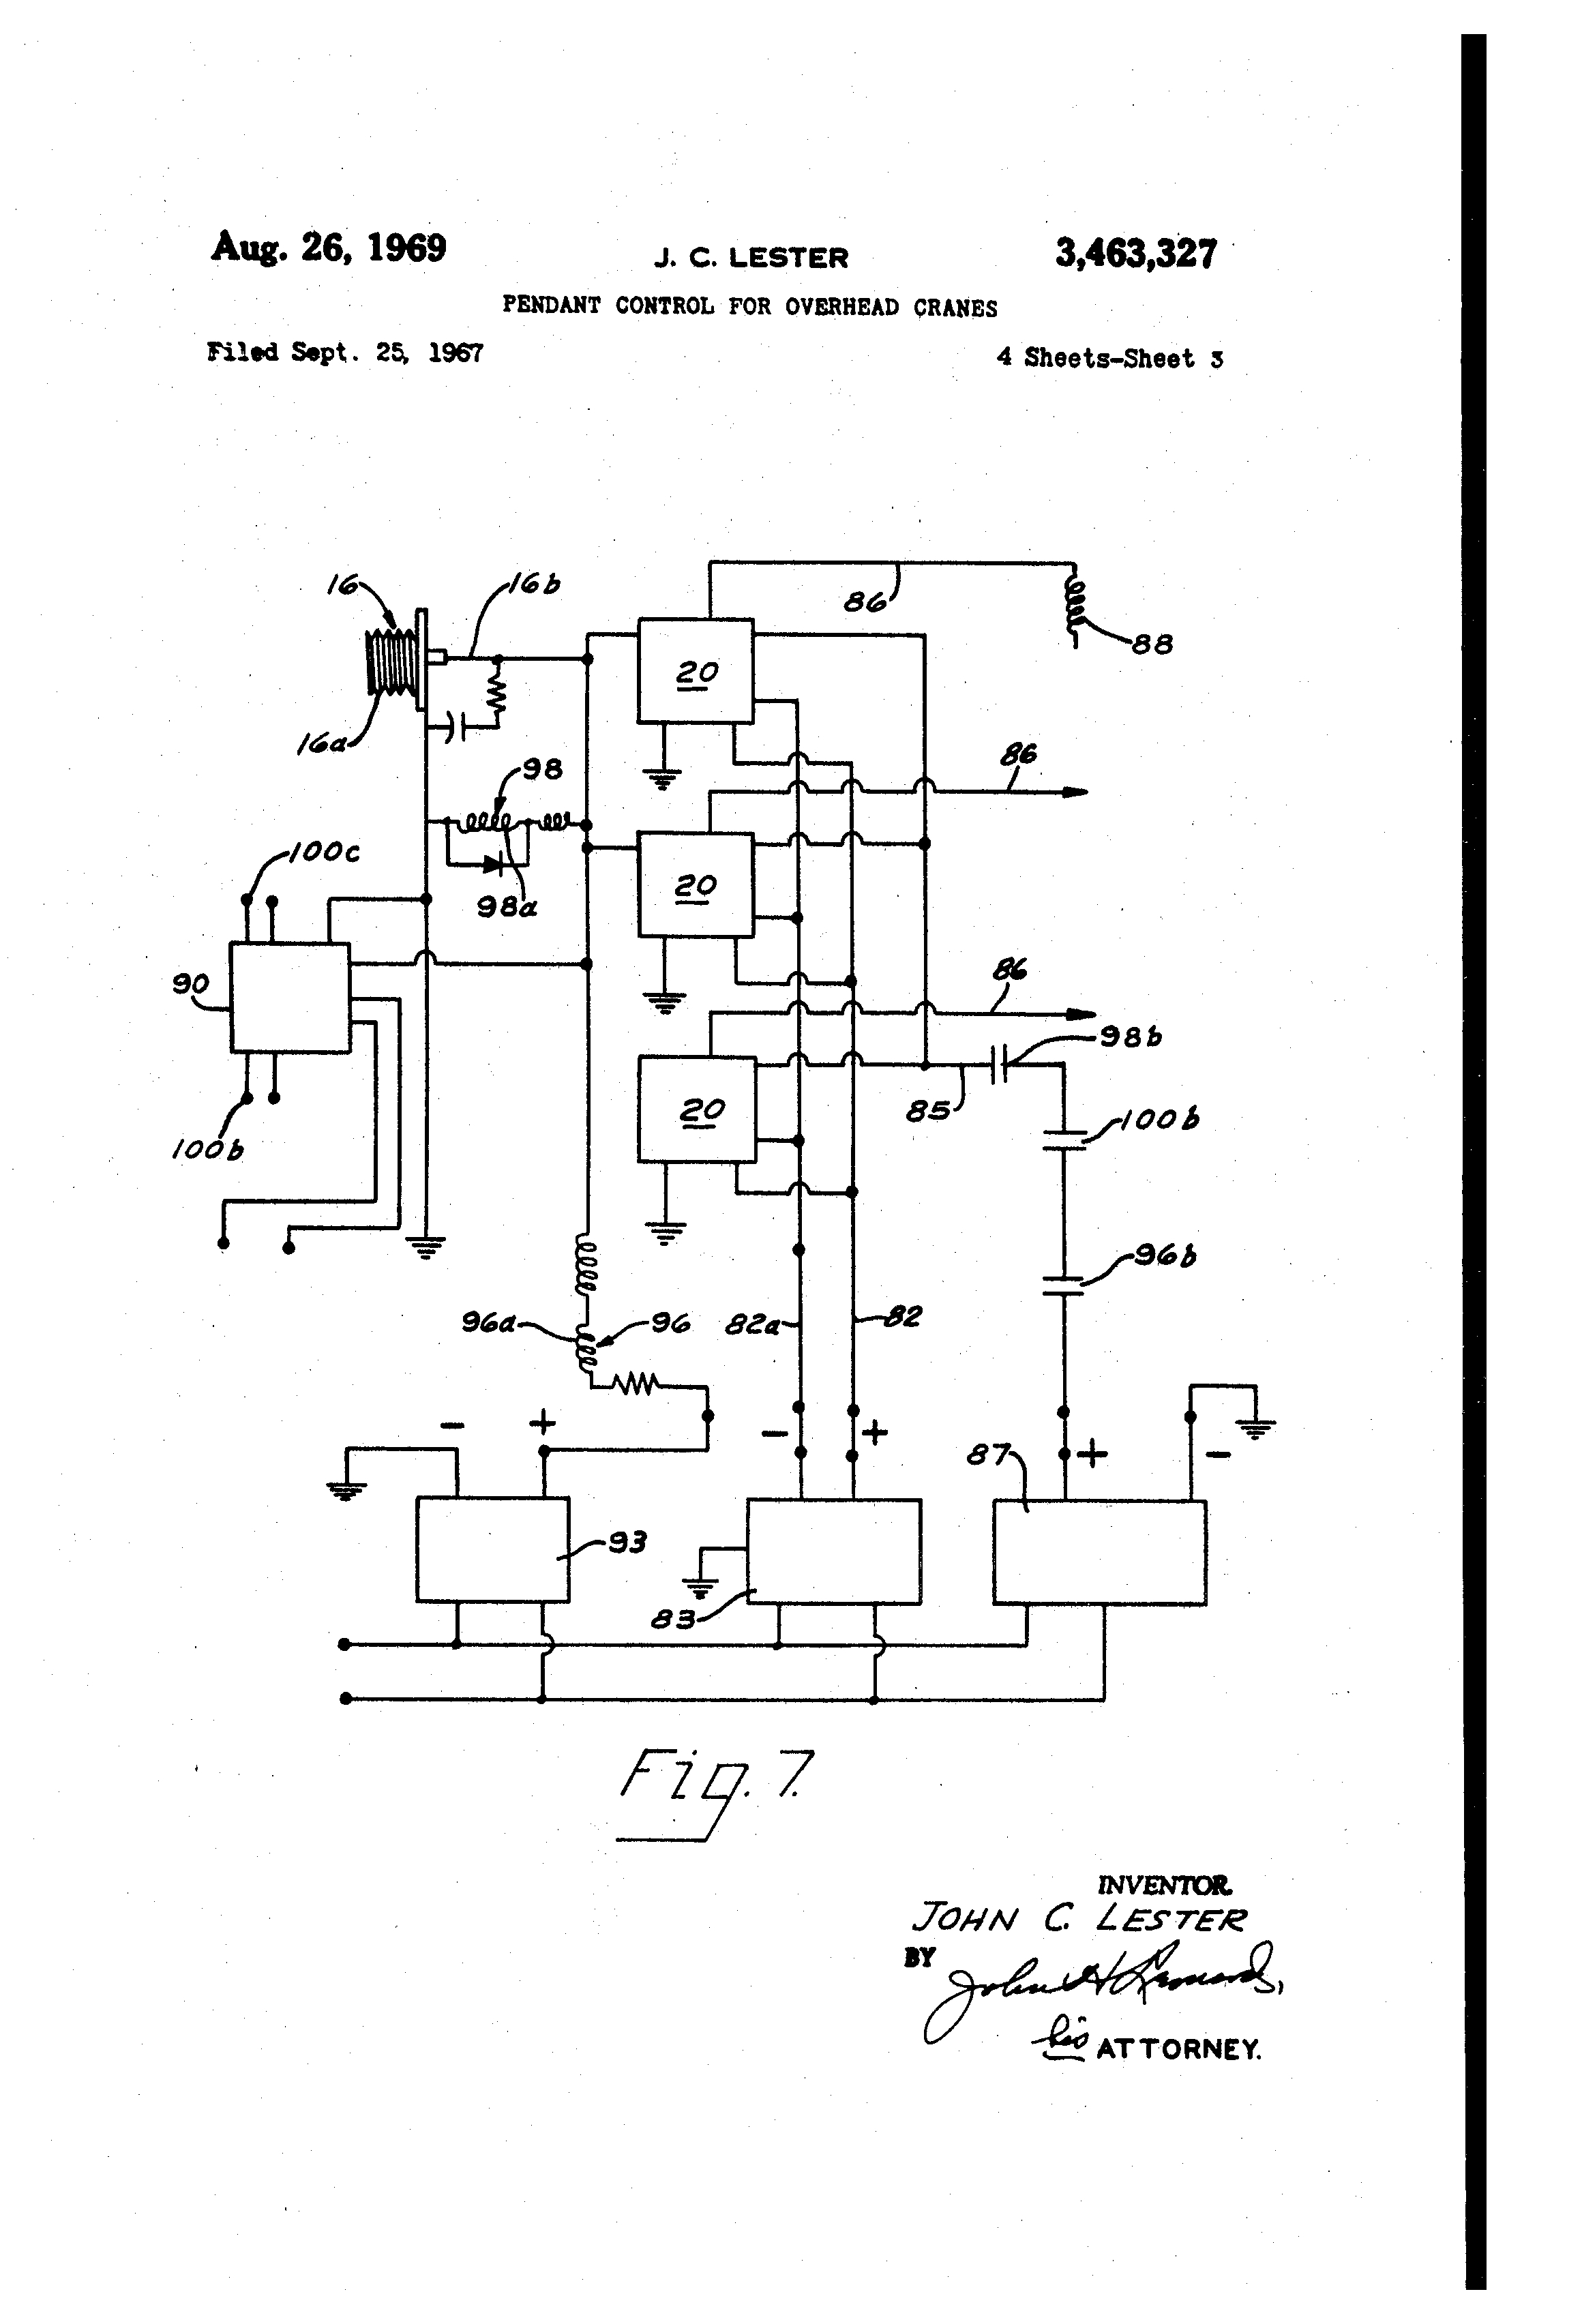 pittsburgh electric hoist wiring diagram Download-Coffing Hoist Wiring Diagram Pittsburgh Electric Hoist Wiring Diagram Collection 20-f